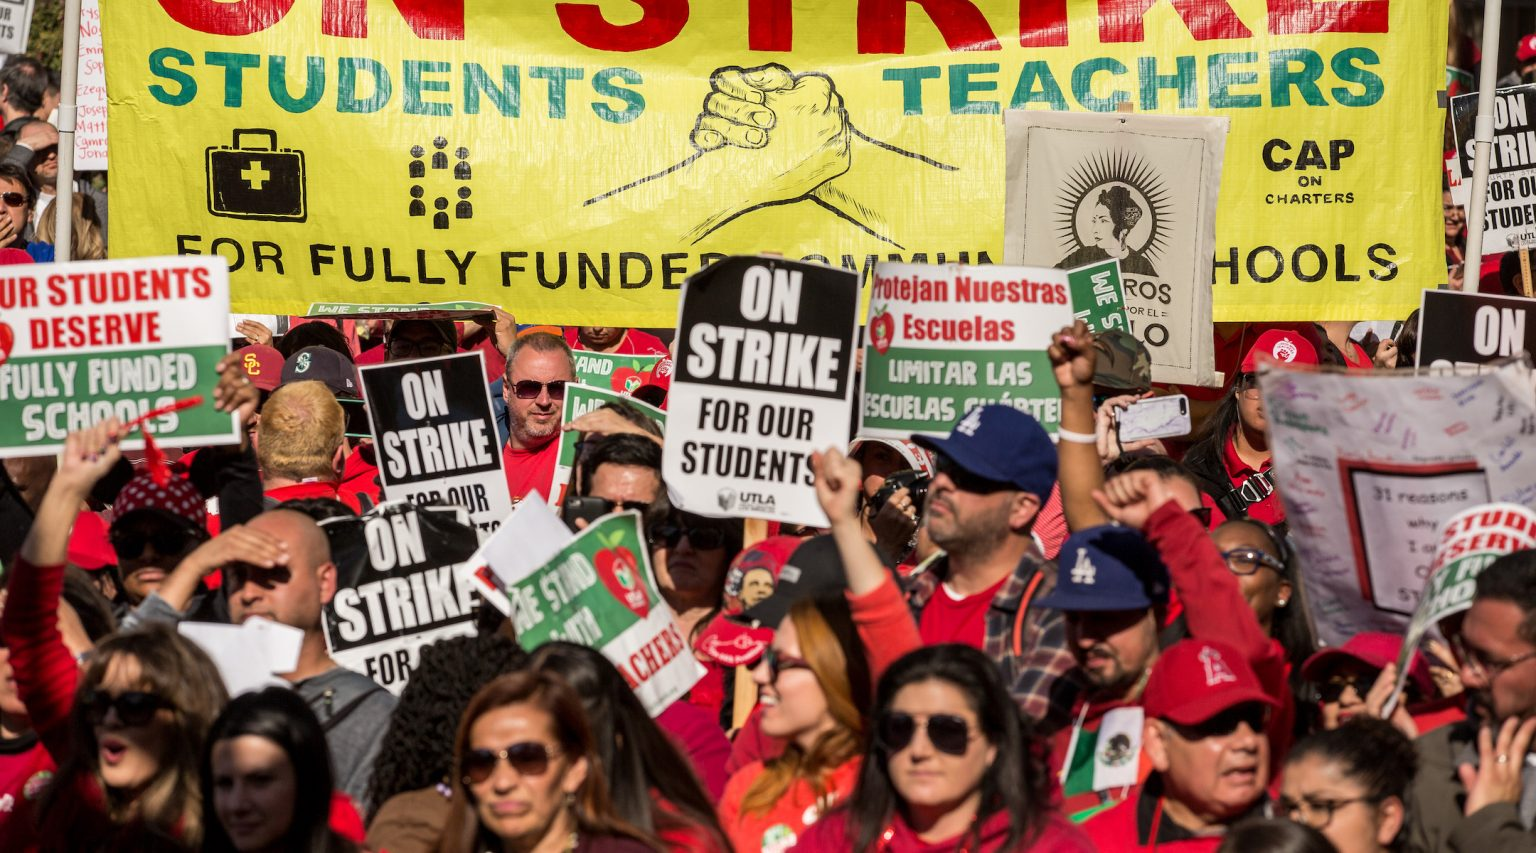 Members and supporters of the United Teachers of Los Angeles union wave and cheer in a downtown Los Angeles park at the end of a strike, Jan. 22, 2019. (Photo/JTA-Scott Heins-Getty Images)